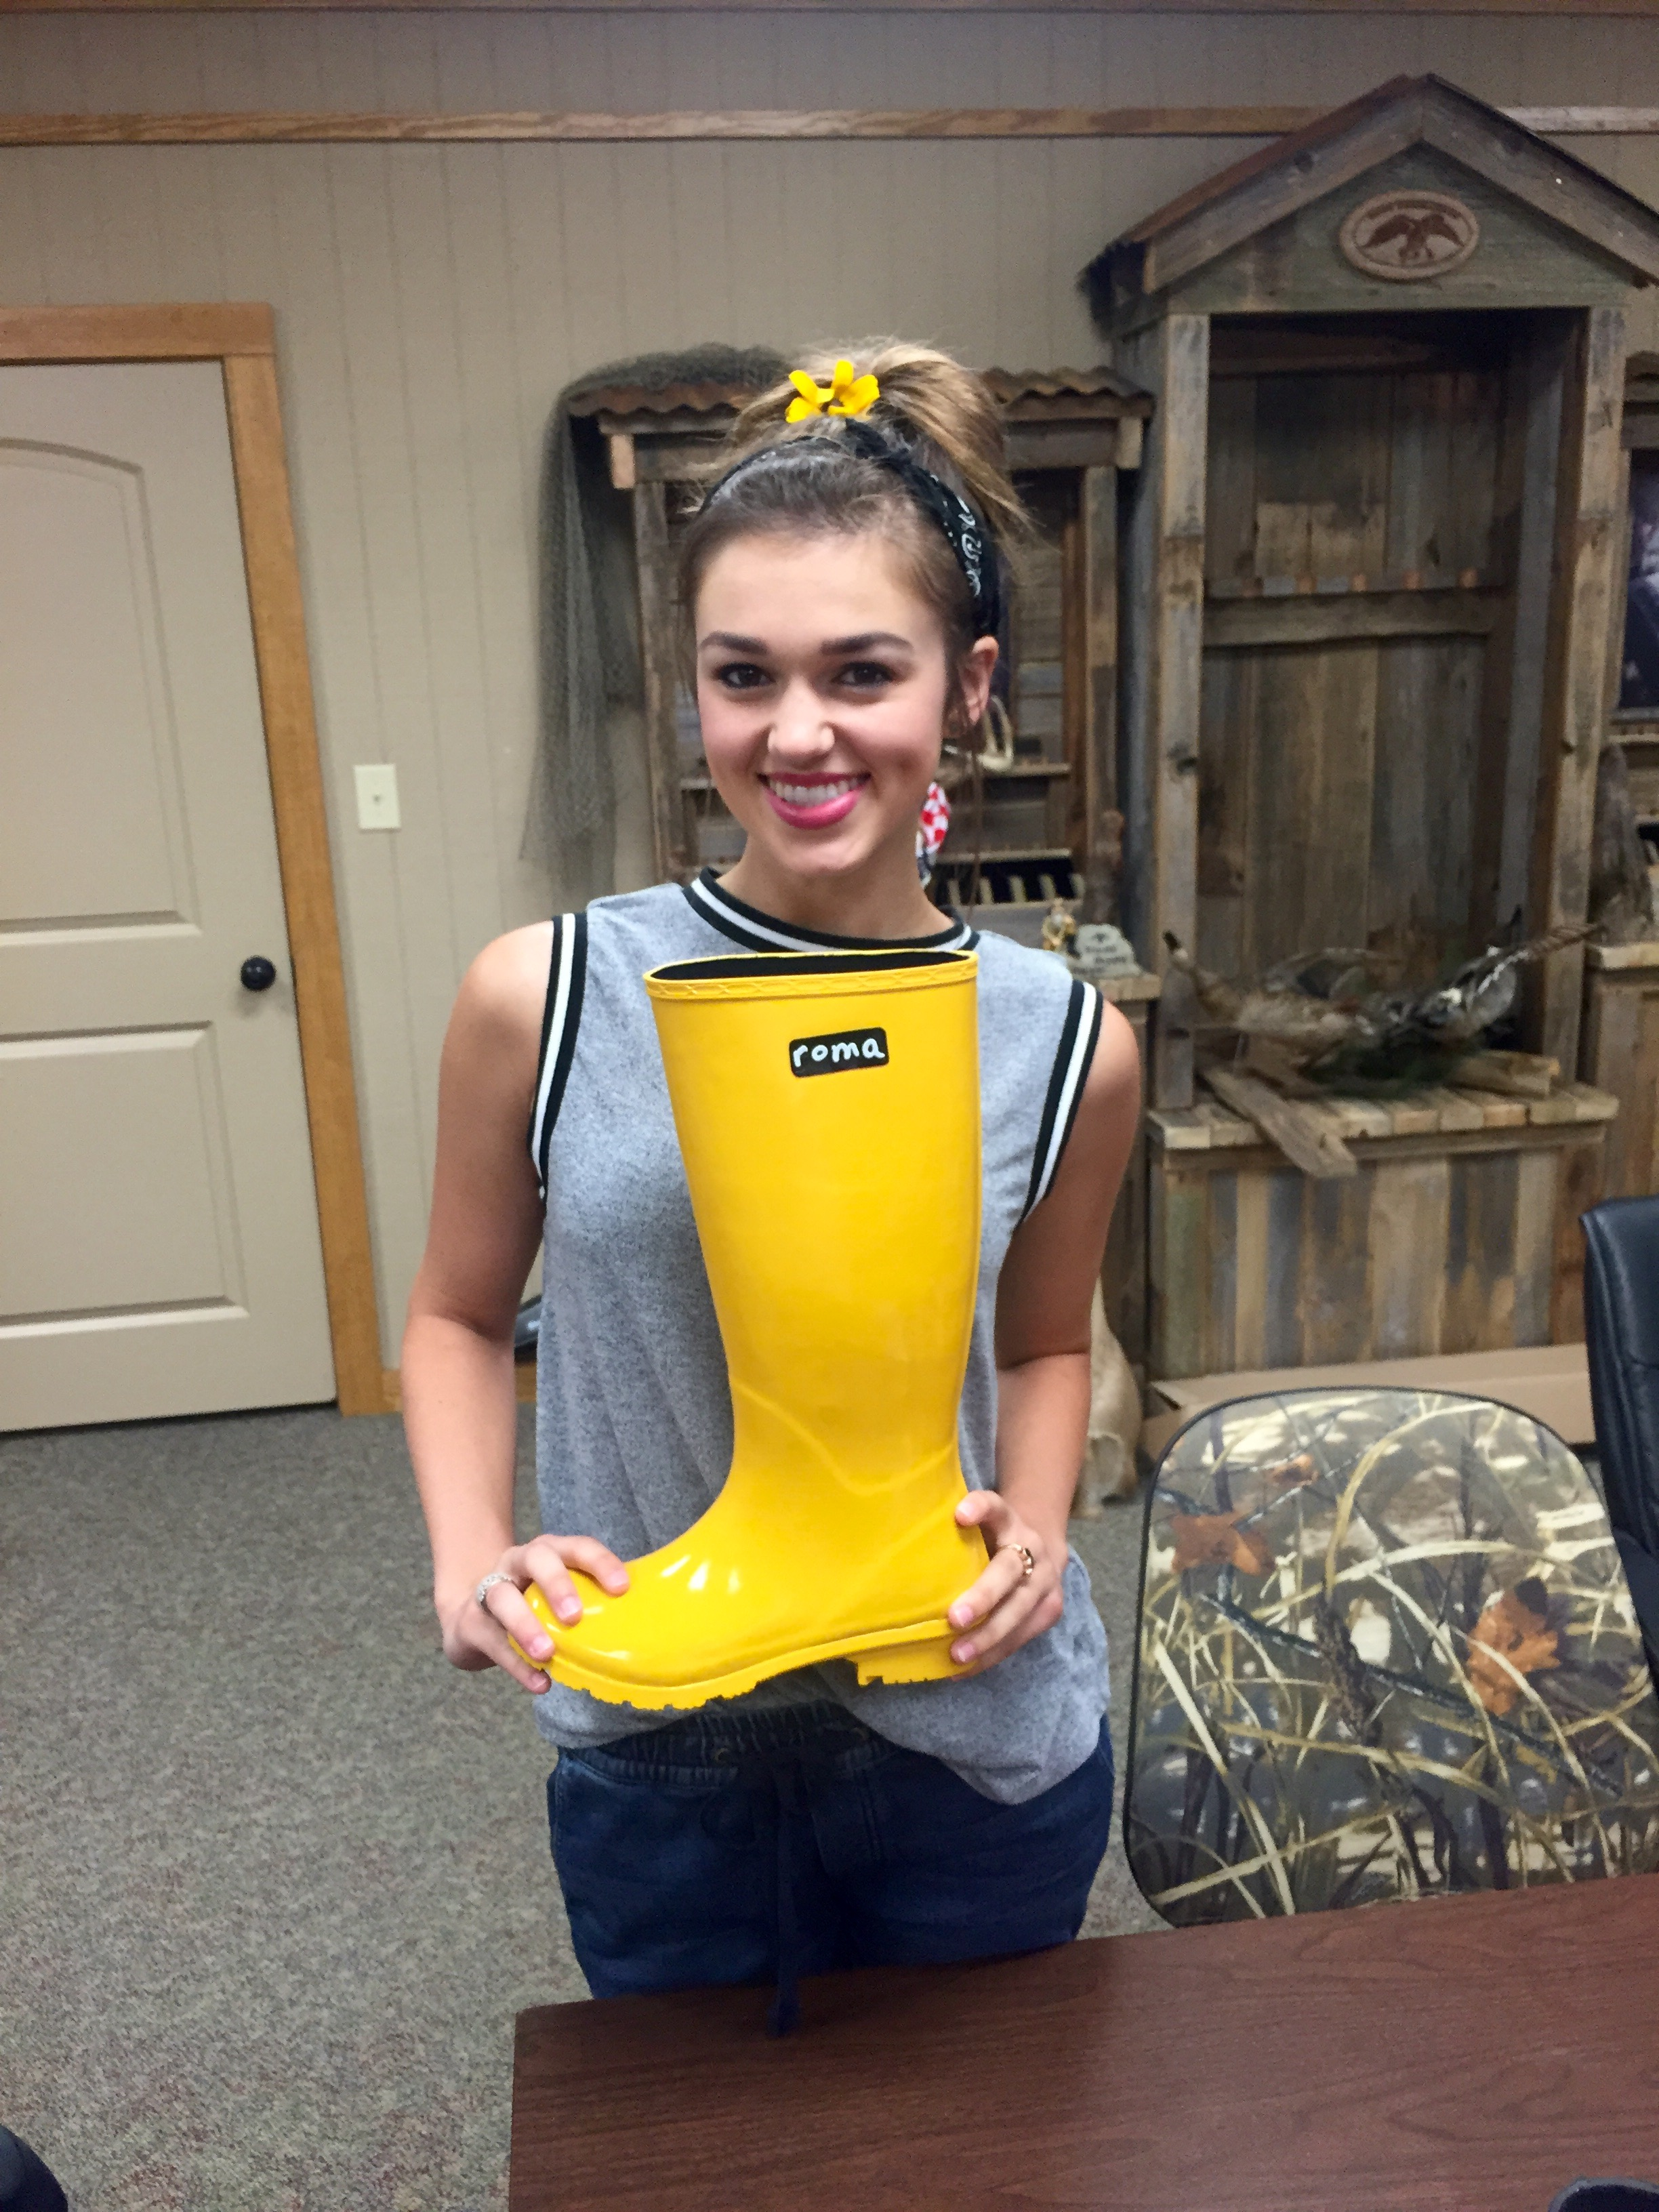 Roma Boots Announces Partnership With Sadie Robertson To